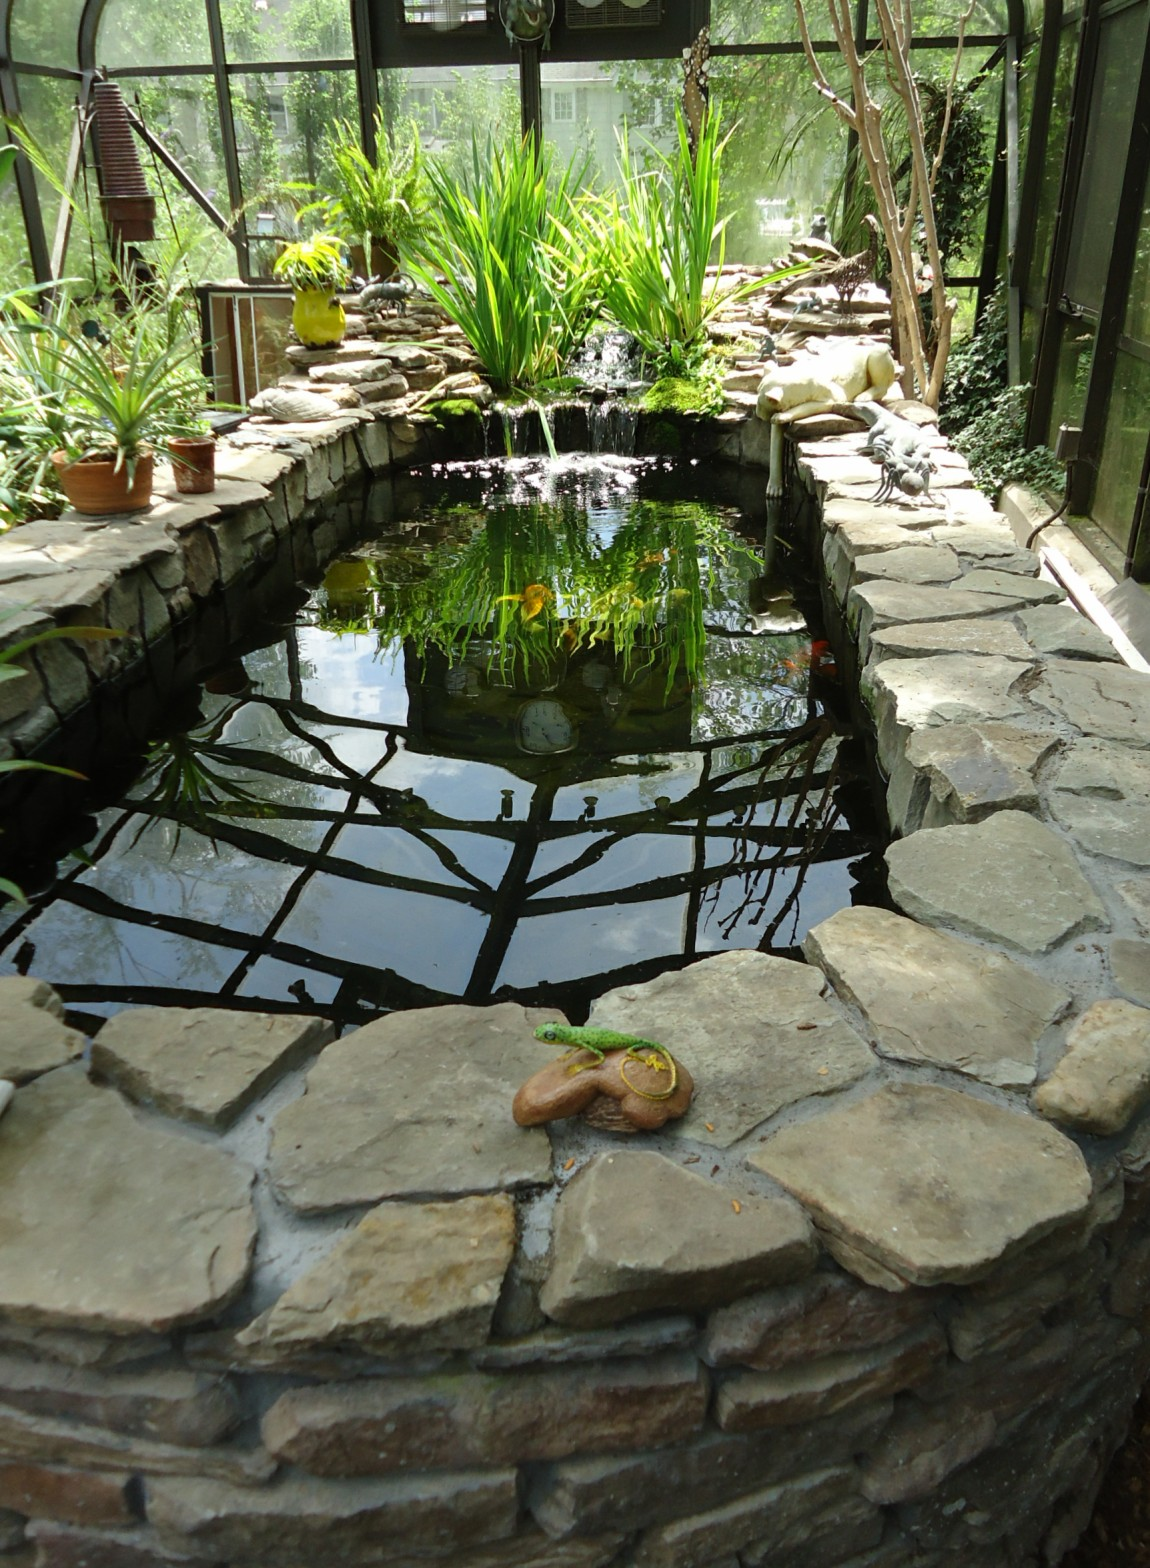 File:Outdoor heated fish tank enclosed by glass plus reflections.jpg